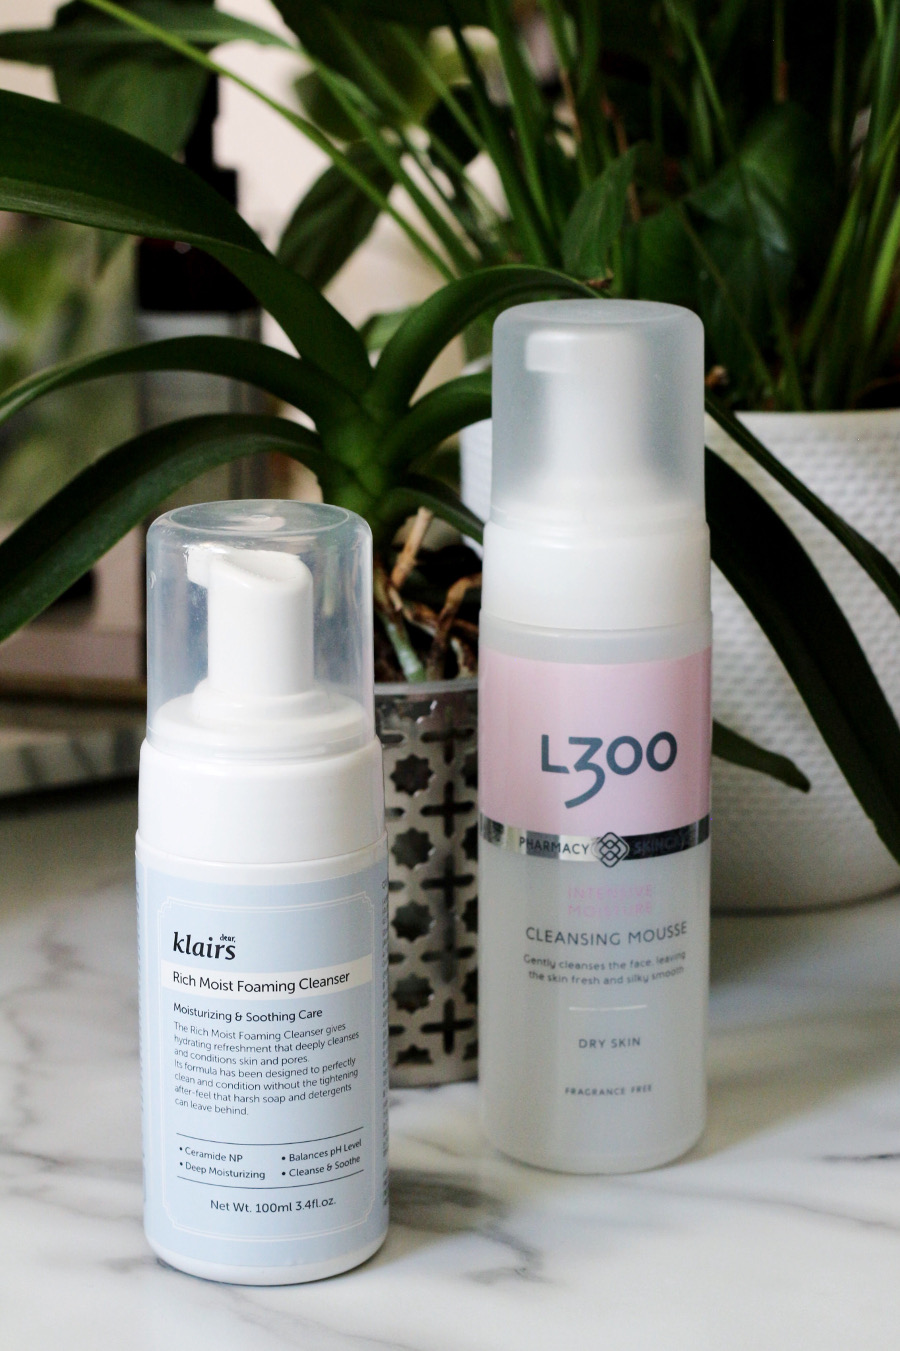 Klairs Rich Moist Foaming Cleanser and L300 Moisturizing Cleansing Mousse